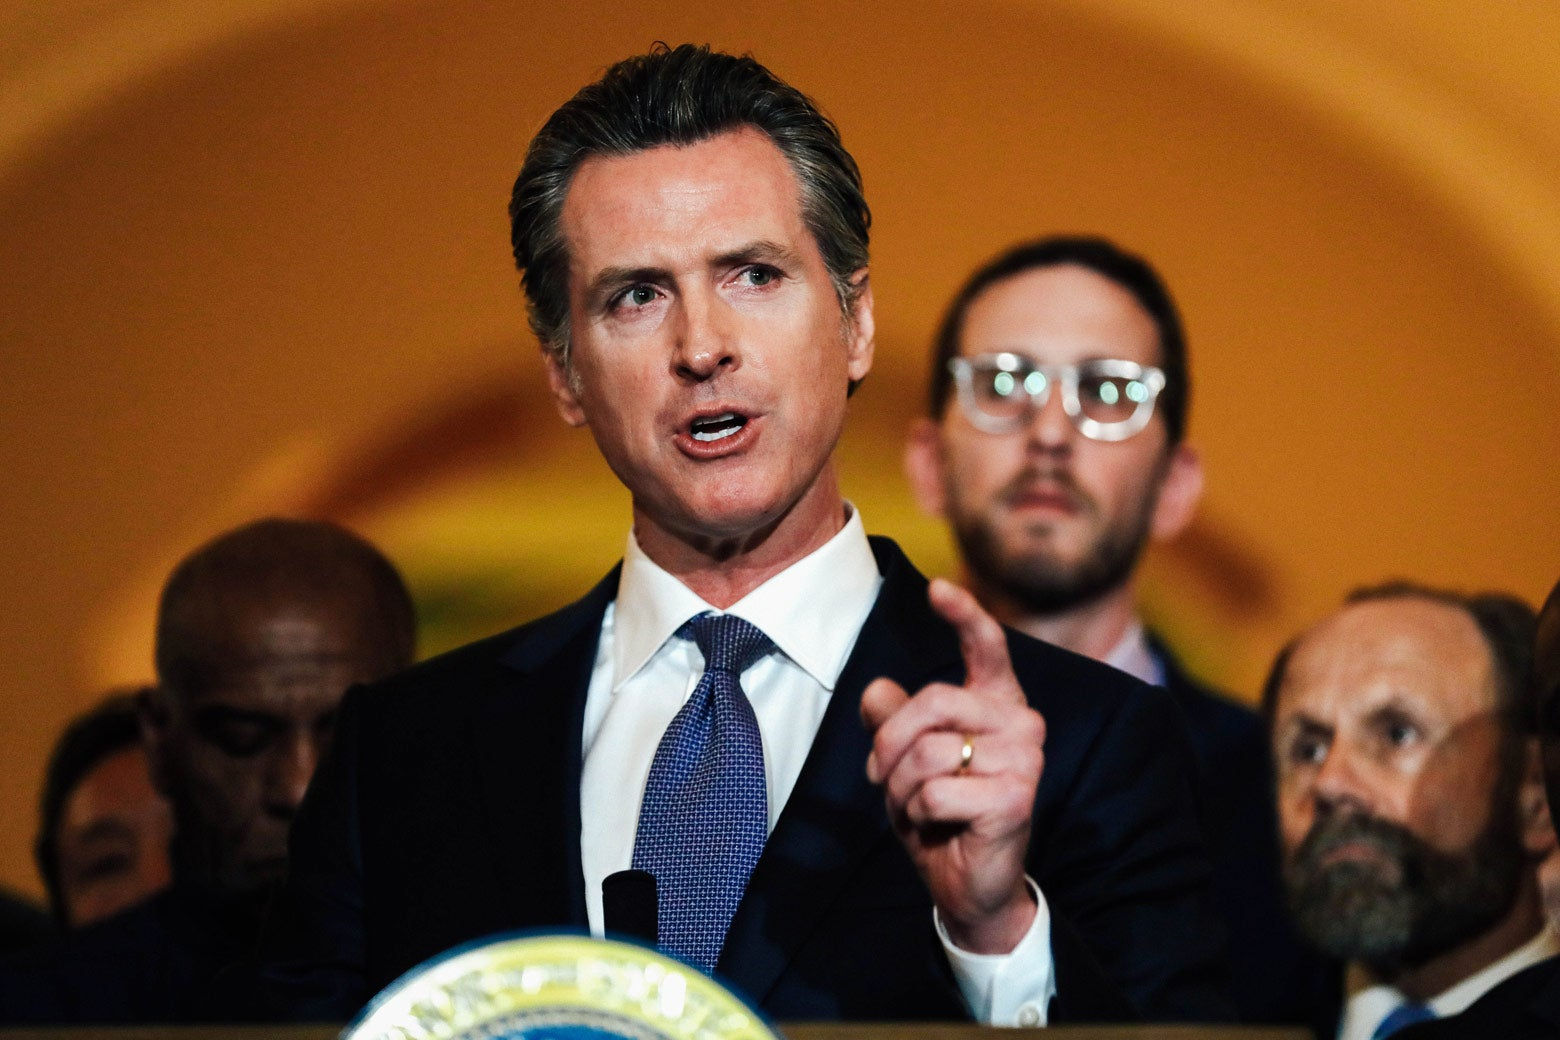 California Gov. Gavin Newsom speaks during a news conference at the California State Capitol on March 13.